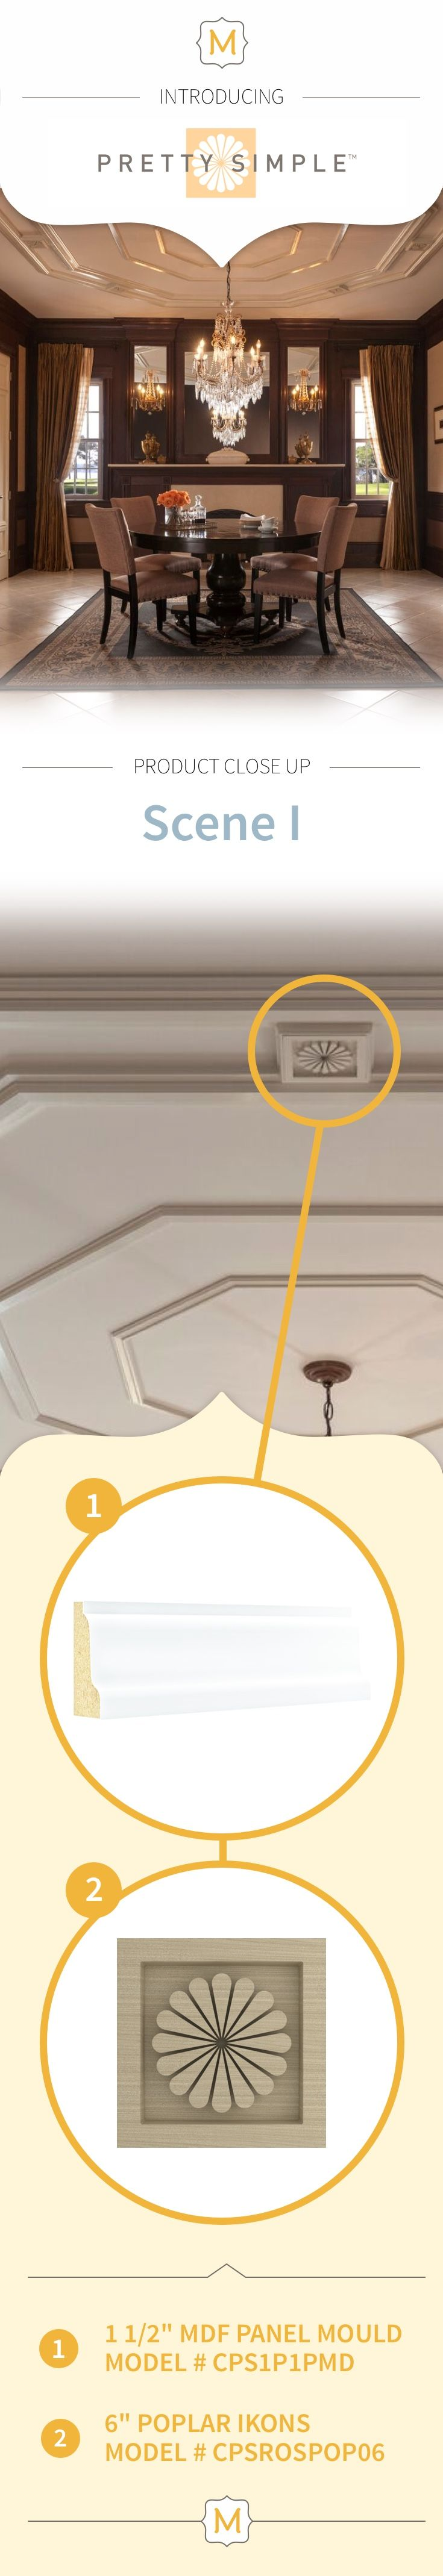 These attention-grabbing Ikons from Metrie's Pretty Simple Collection add a decorative flair to the moulding elements on this ceiling.